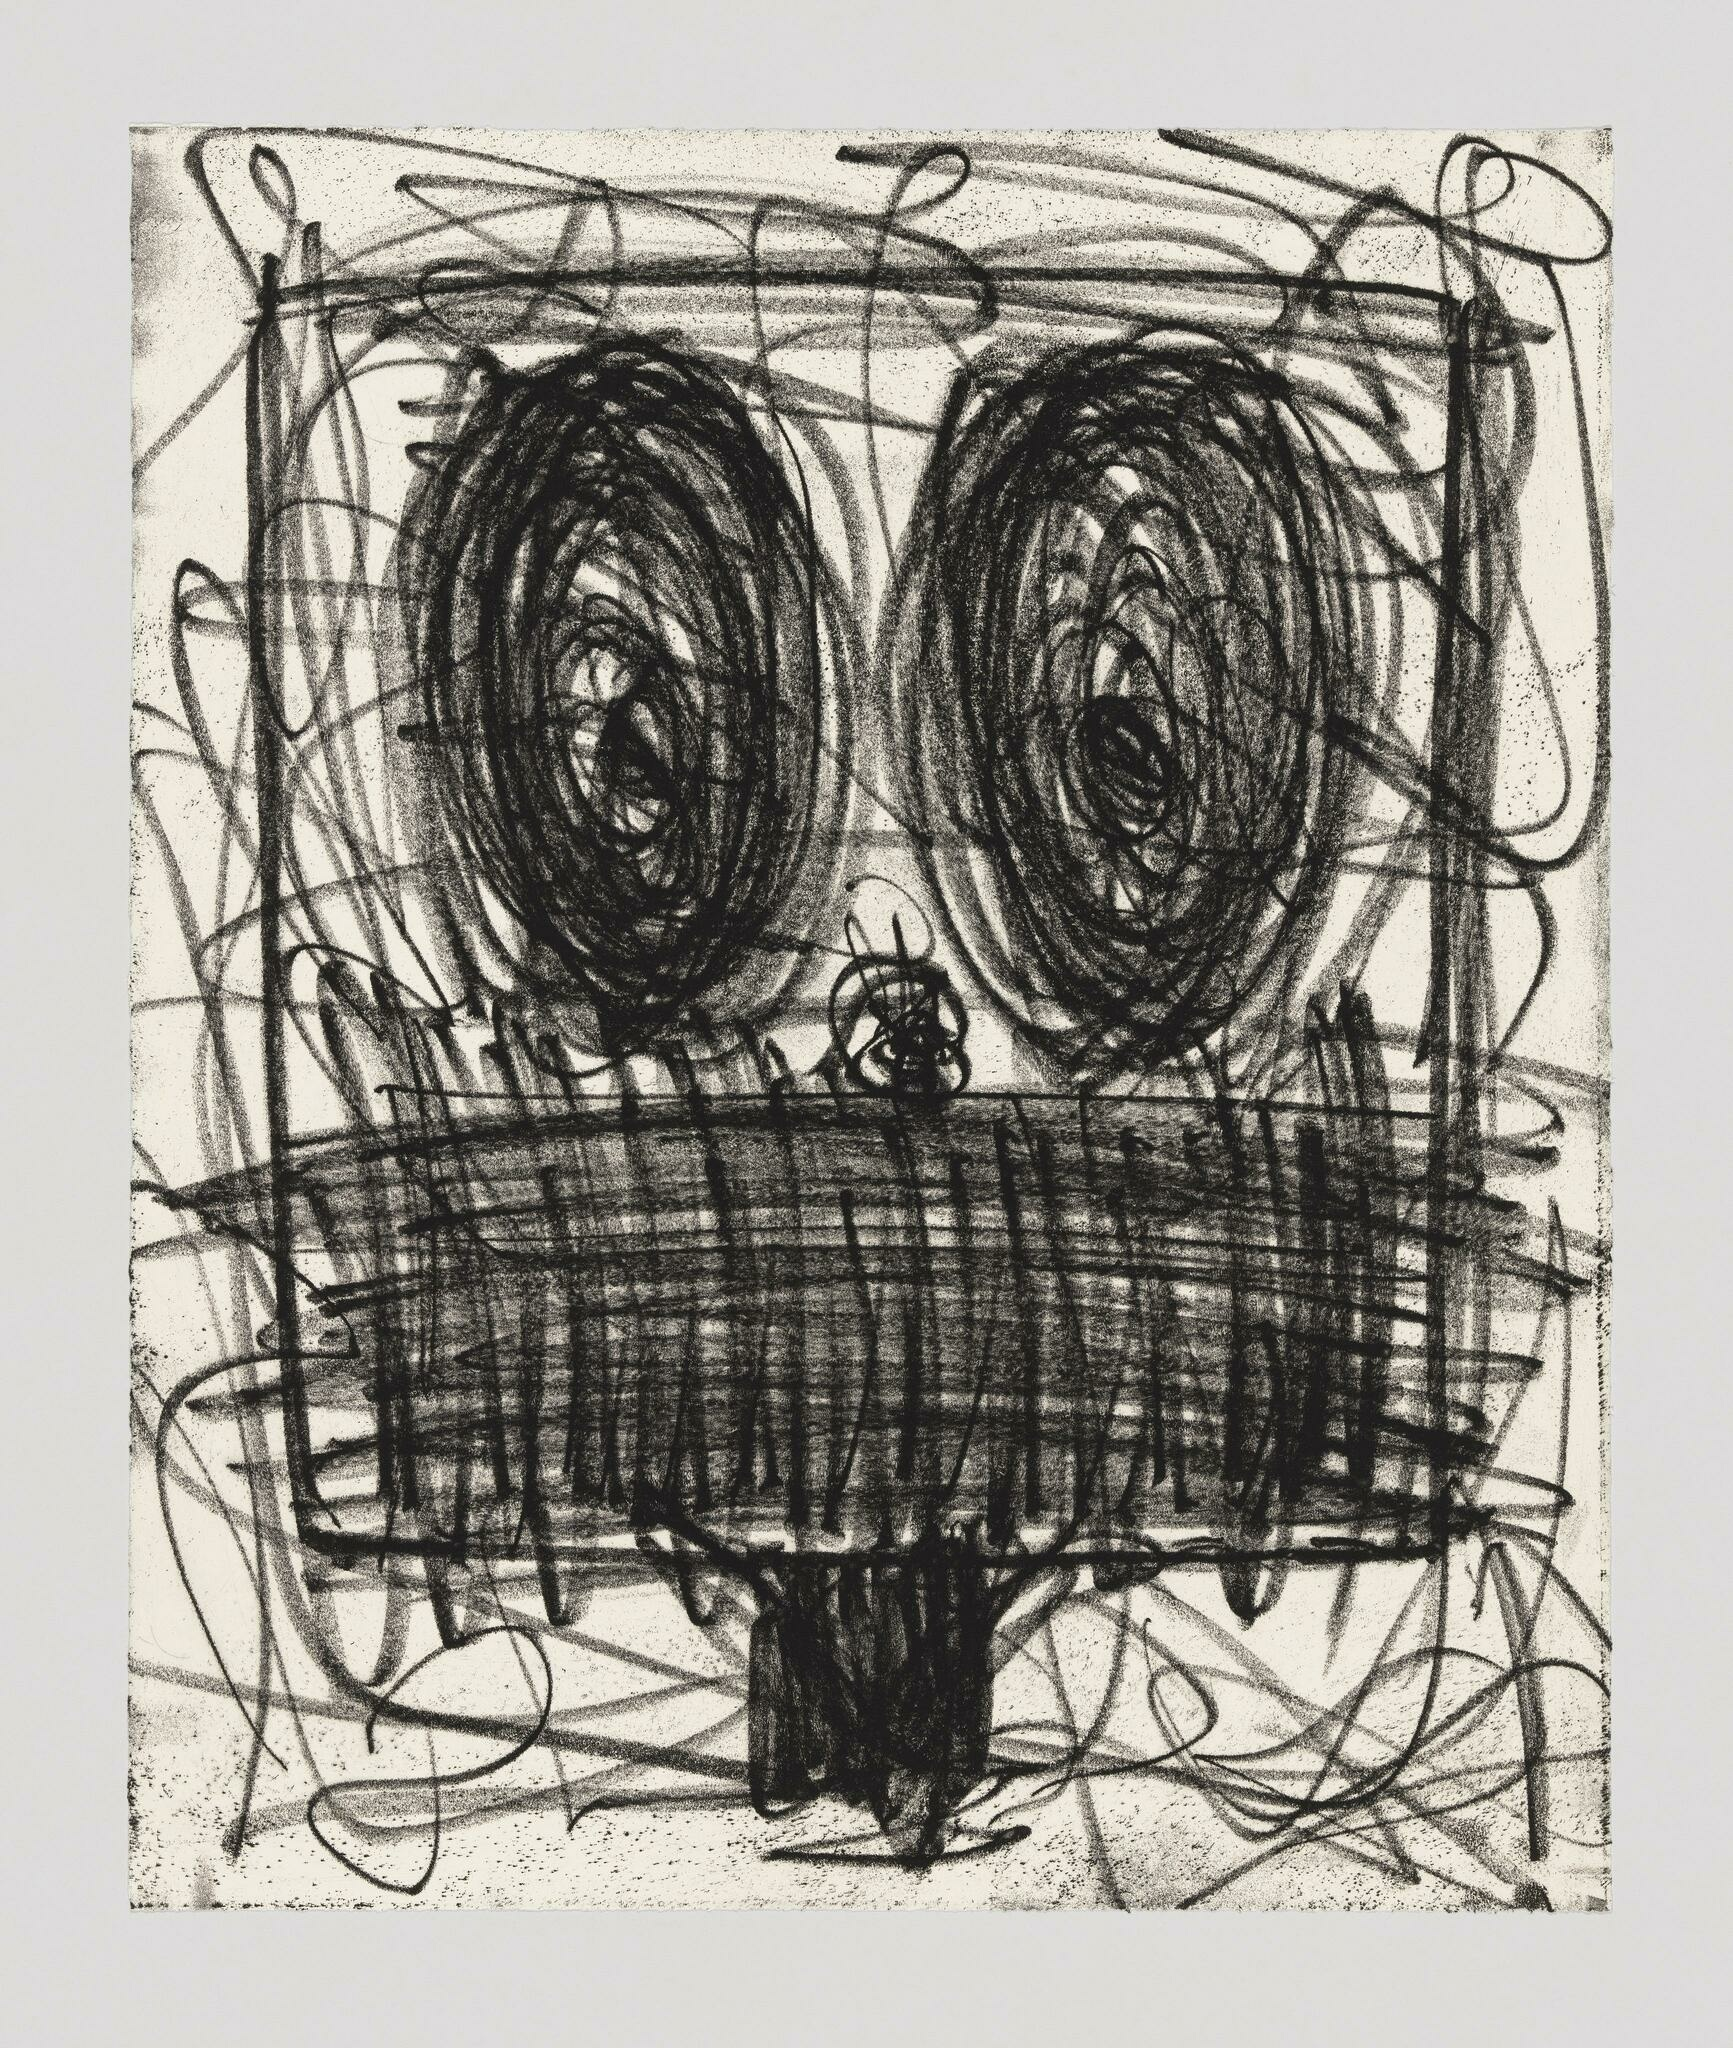 A face with big dark swirls for eyes, and chaotic, scribble-like patterns depicting the mouth.